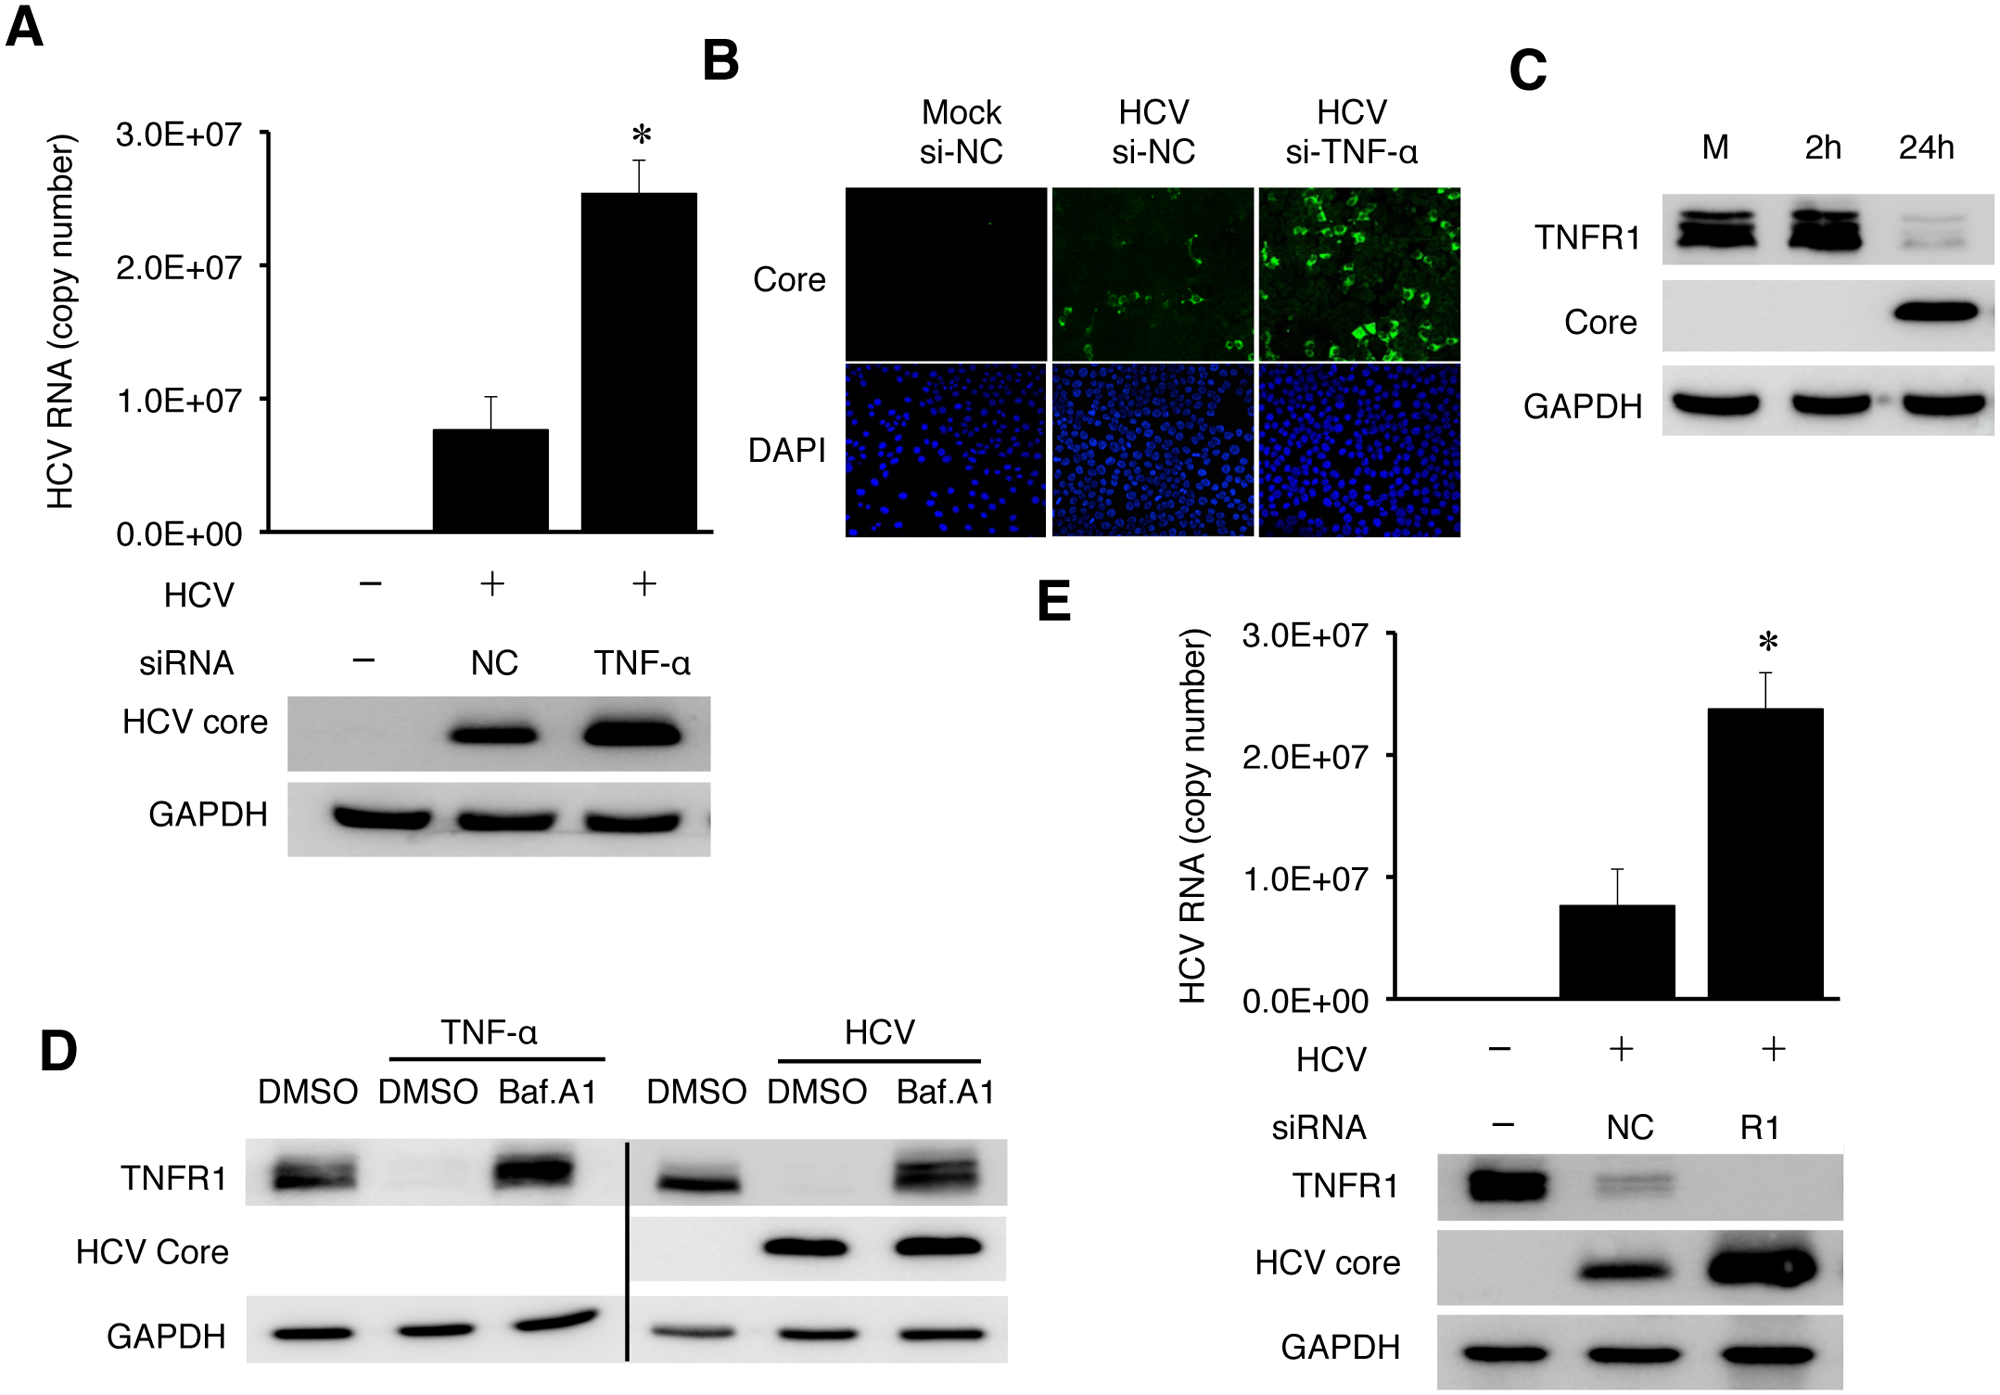 TNF-α knockdown enhanced HCV replication.